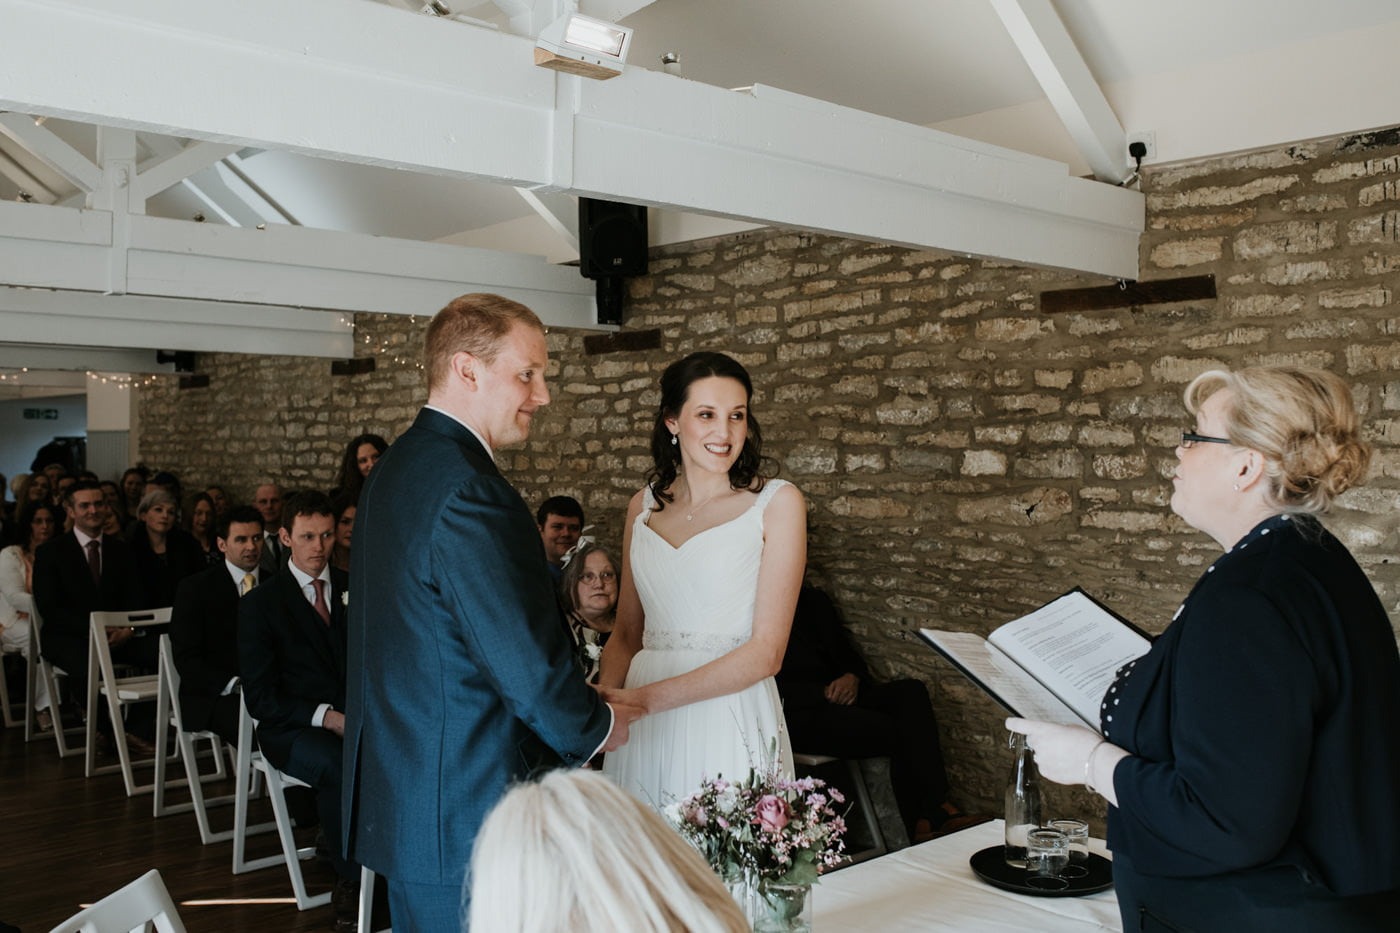 Ruth and Ben, Winkworth Farm, Wiltshire 83